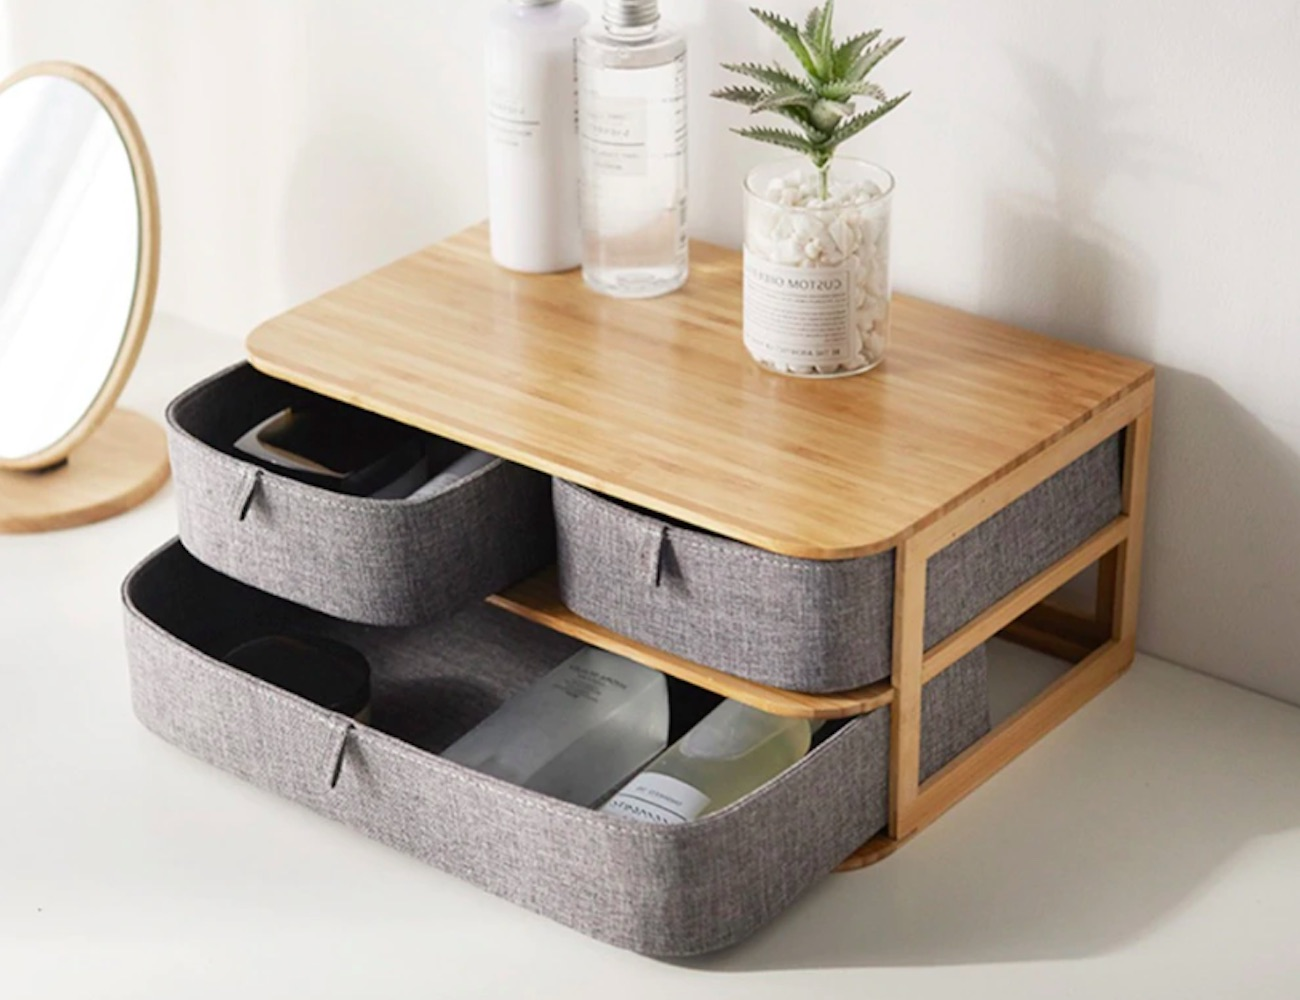 Multi-Layer Desktop Storage Drawers combine style and convenience